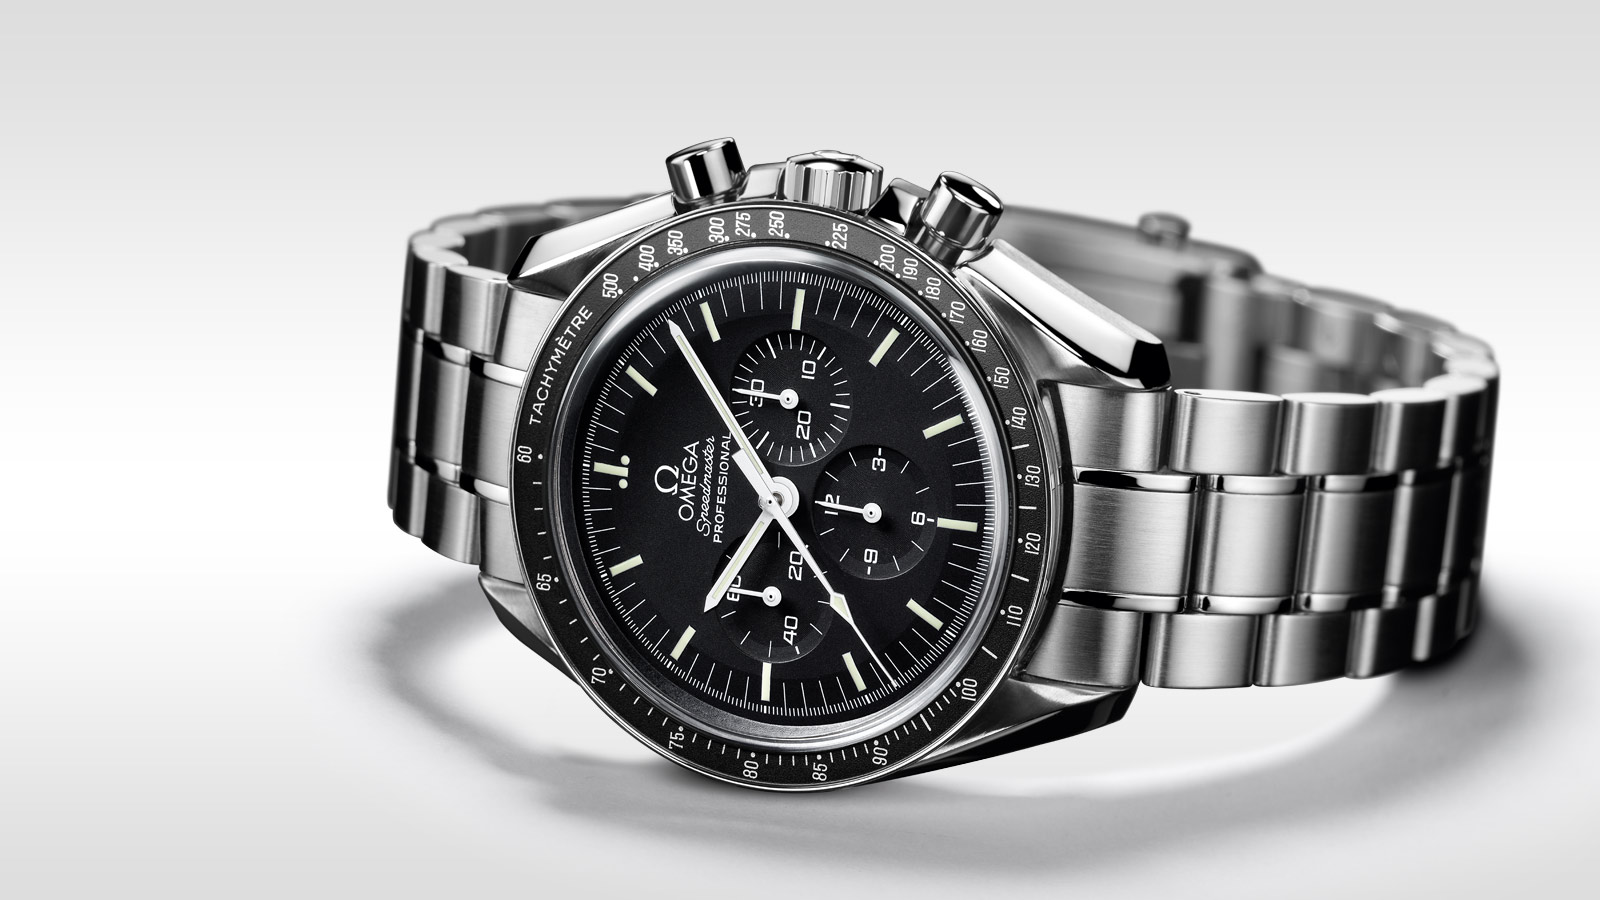 Speedmaster ムーンウォッチ Moonwatch Professional Chronograph 42 mm - 311.30.42.30.01.005 - ビュー 4